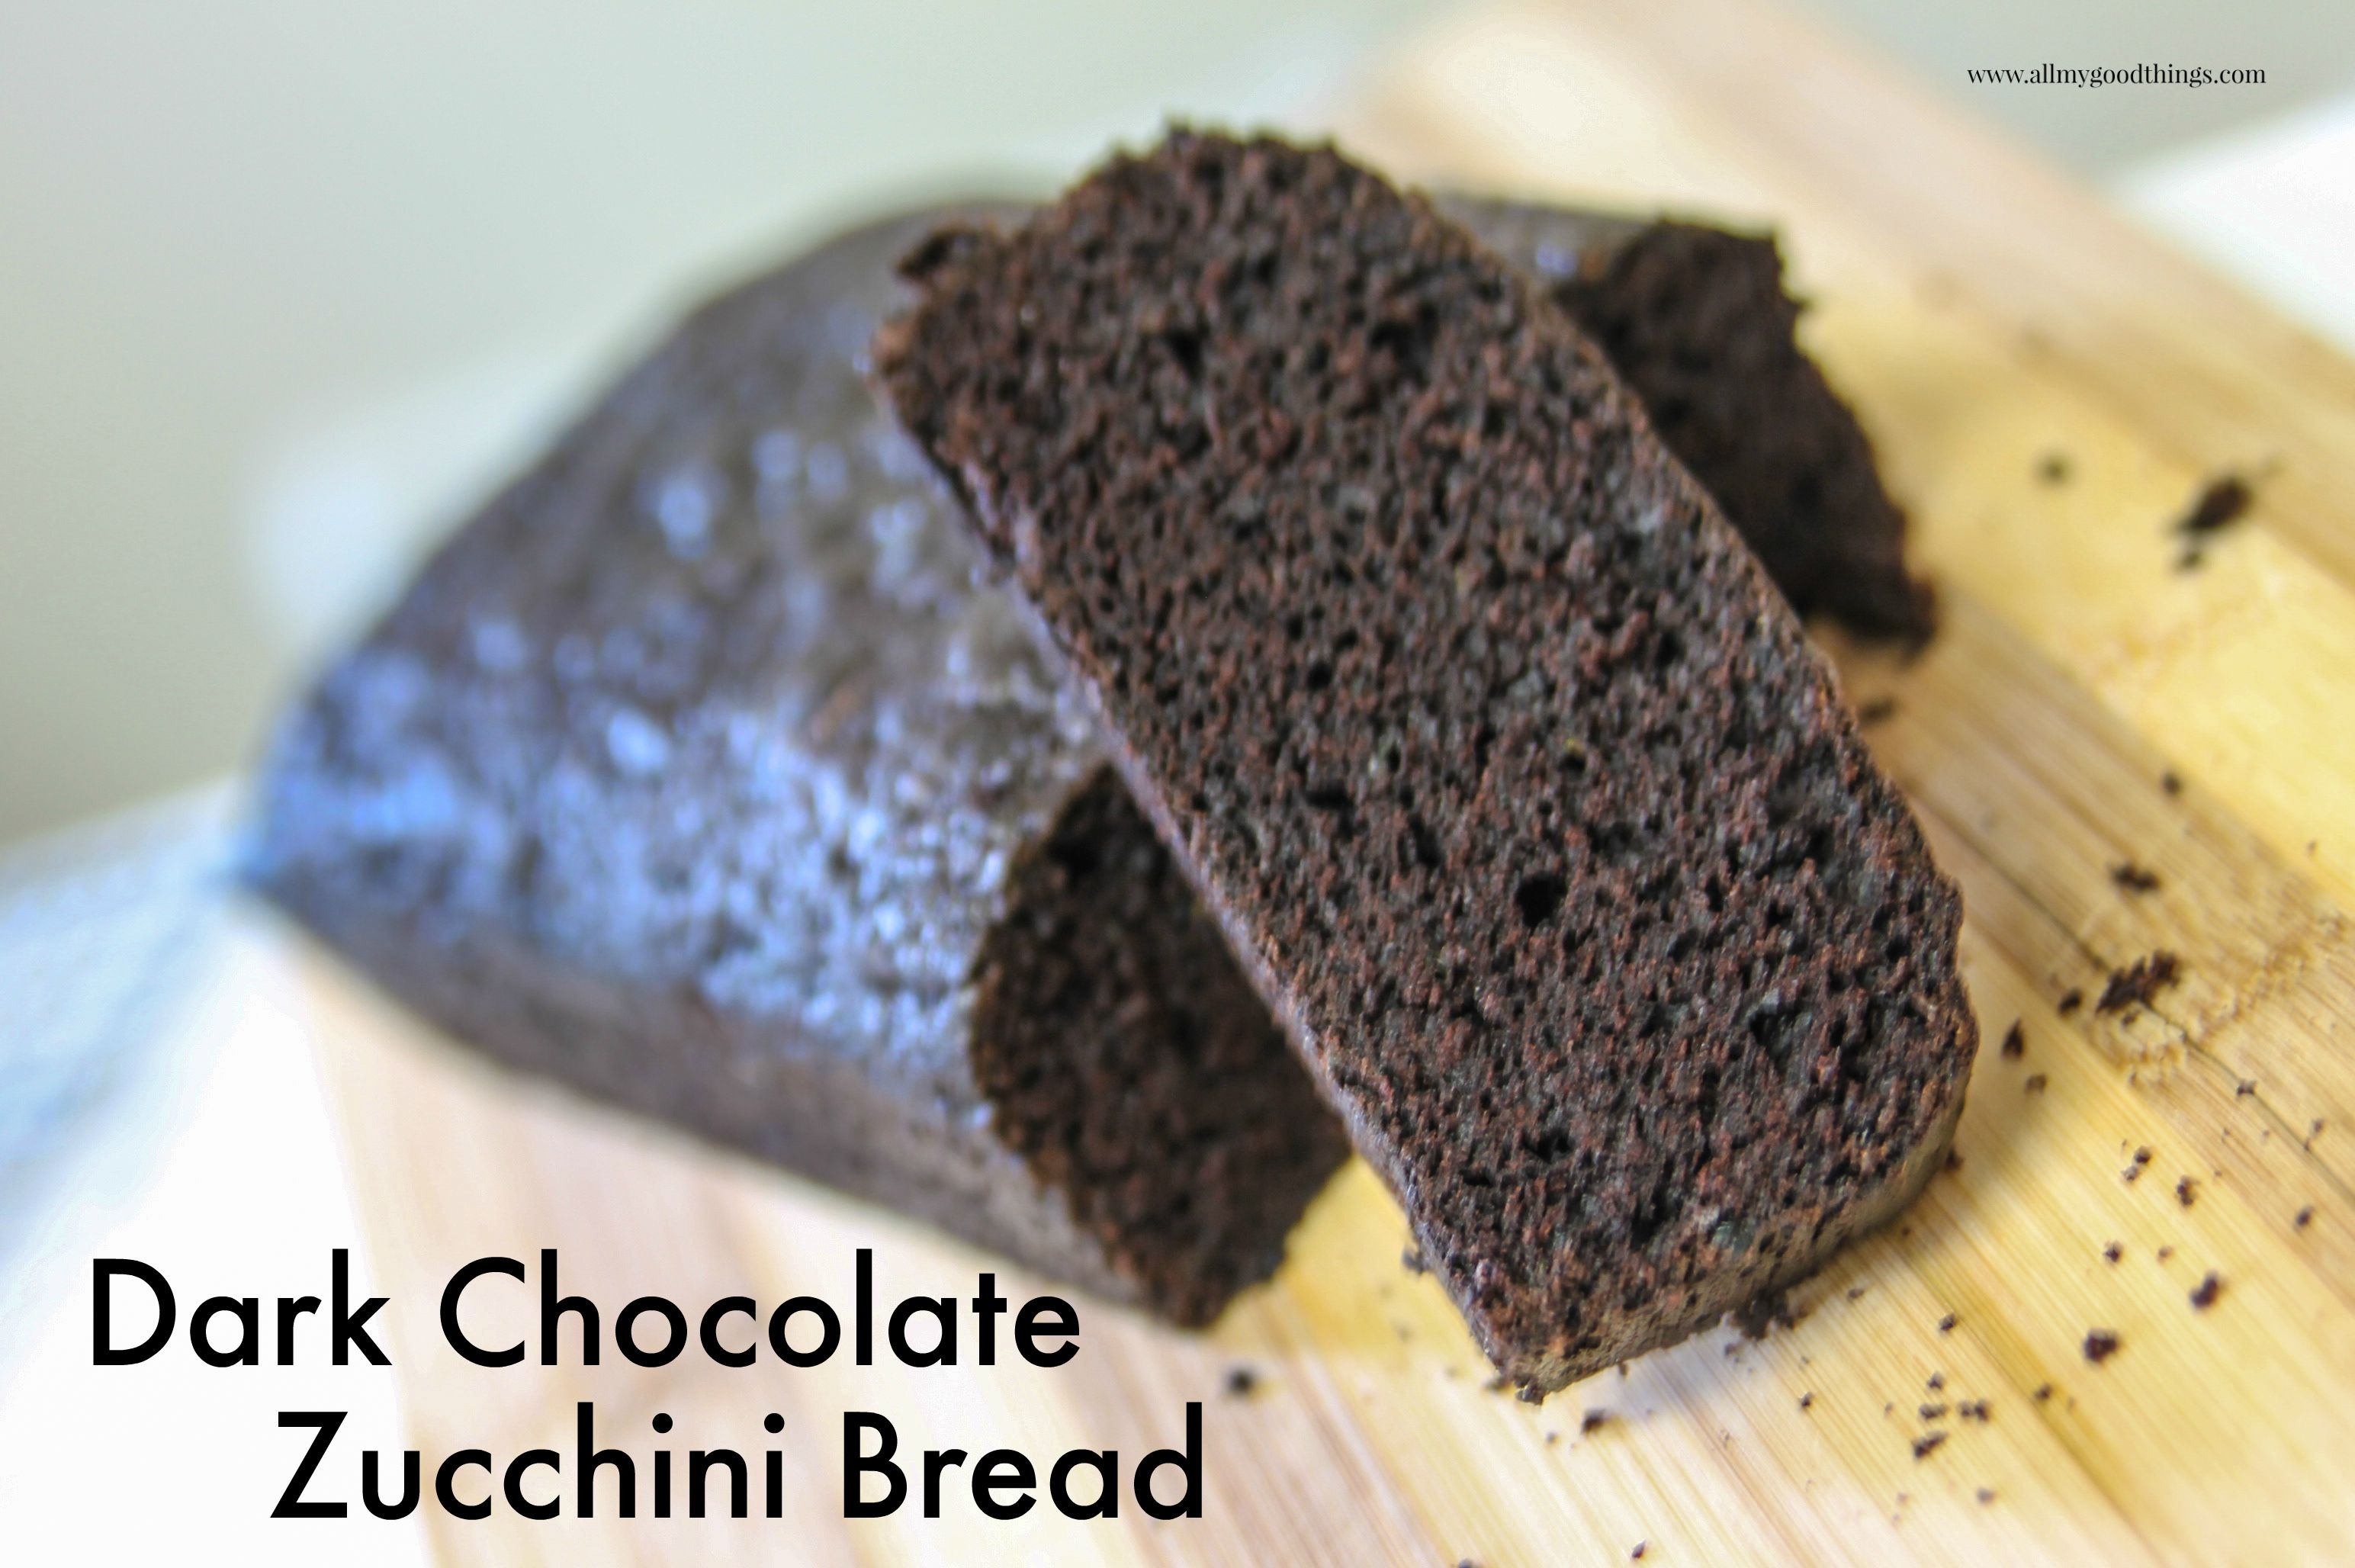 Dark Chocolate Zucchini Bread